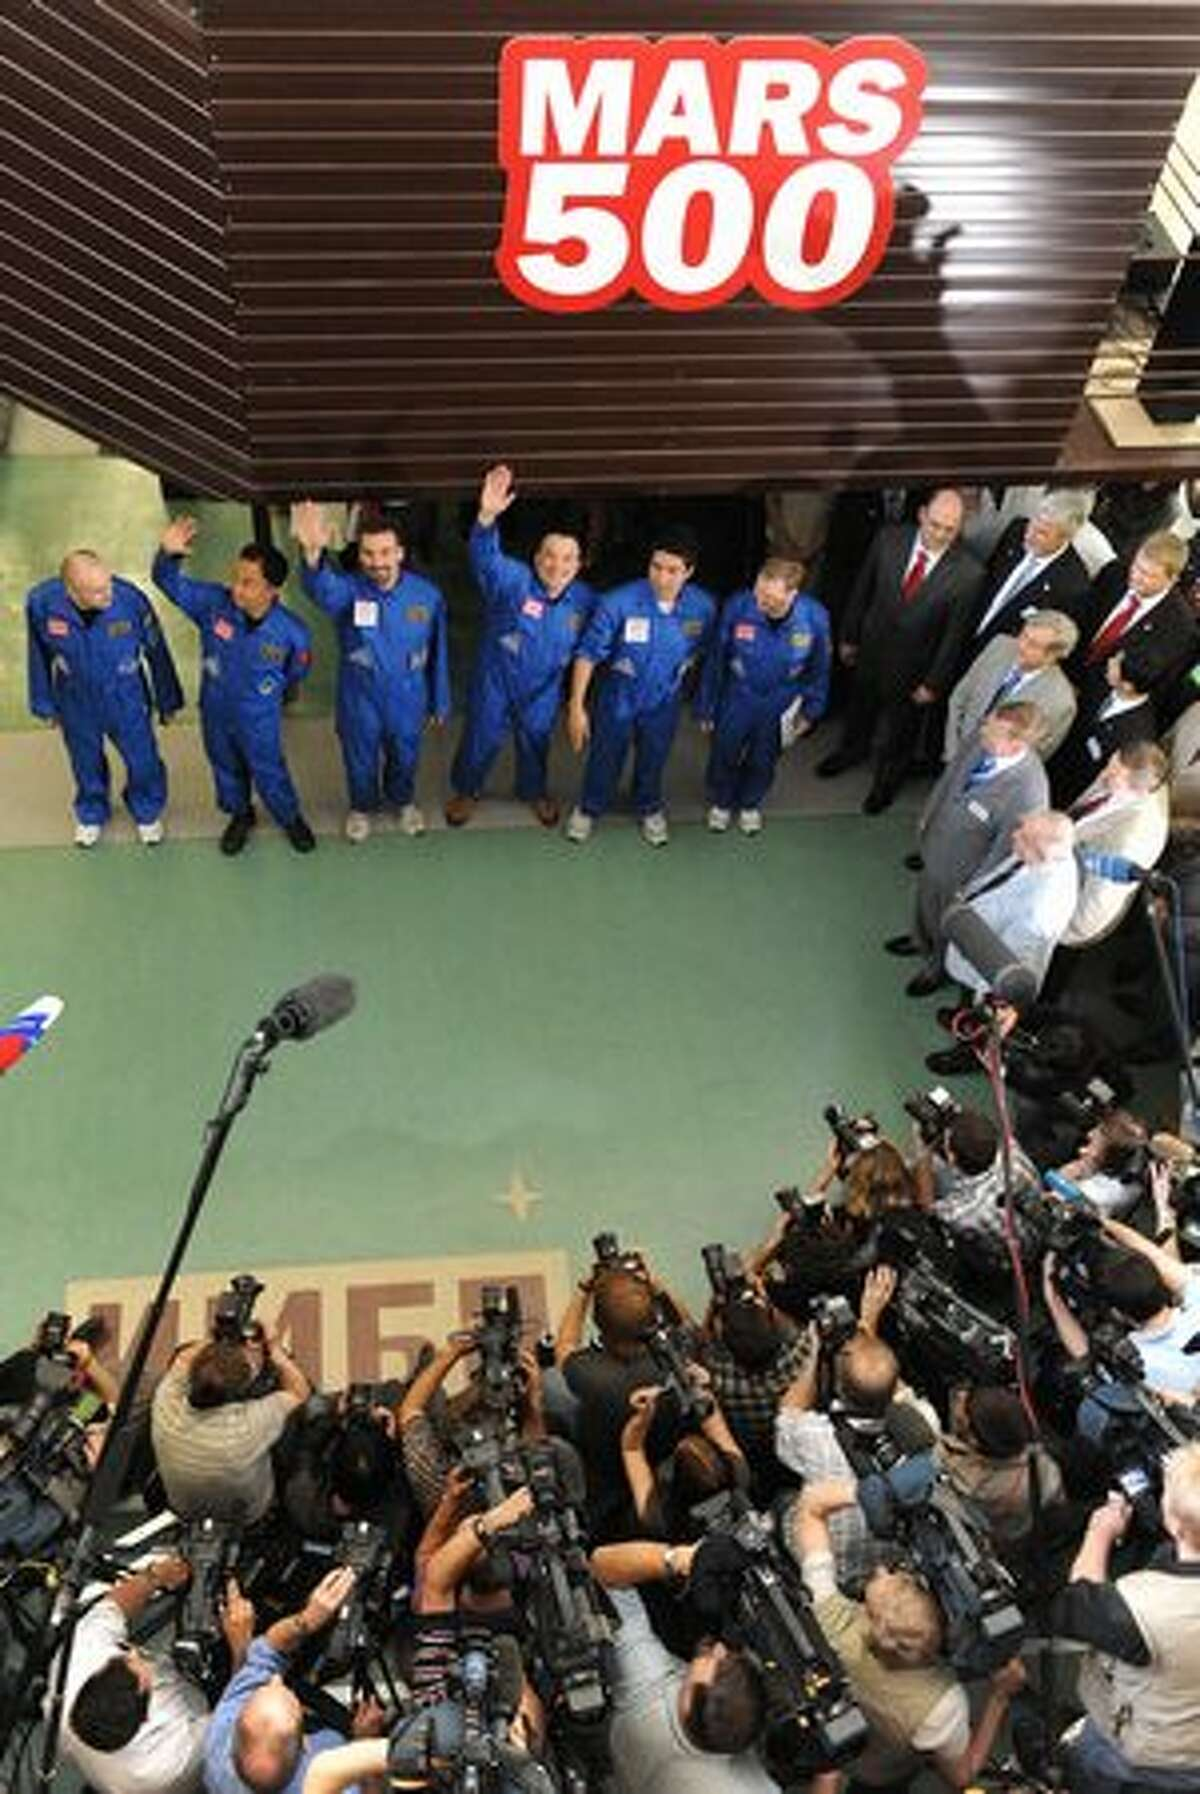 Mars500 crew members (from left) Alexey Sitev, of Russia, Wang Yue, of China, Romain Charles, of France, Sukhrob Kamolov, of Russia, Diego Urbina, of Italy and Alexander Smoleevskiy, of Russia wave before being locked into the Mars500 isolation facility in Moscow.